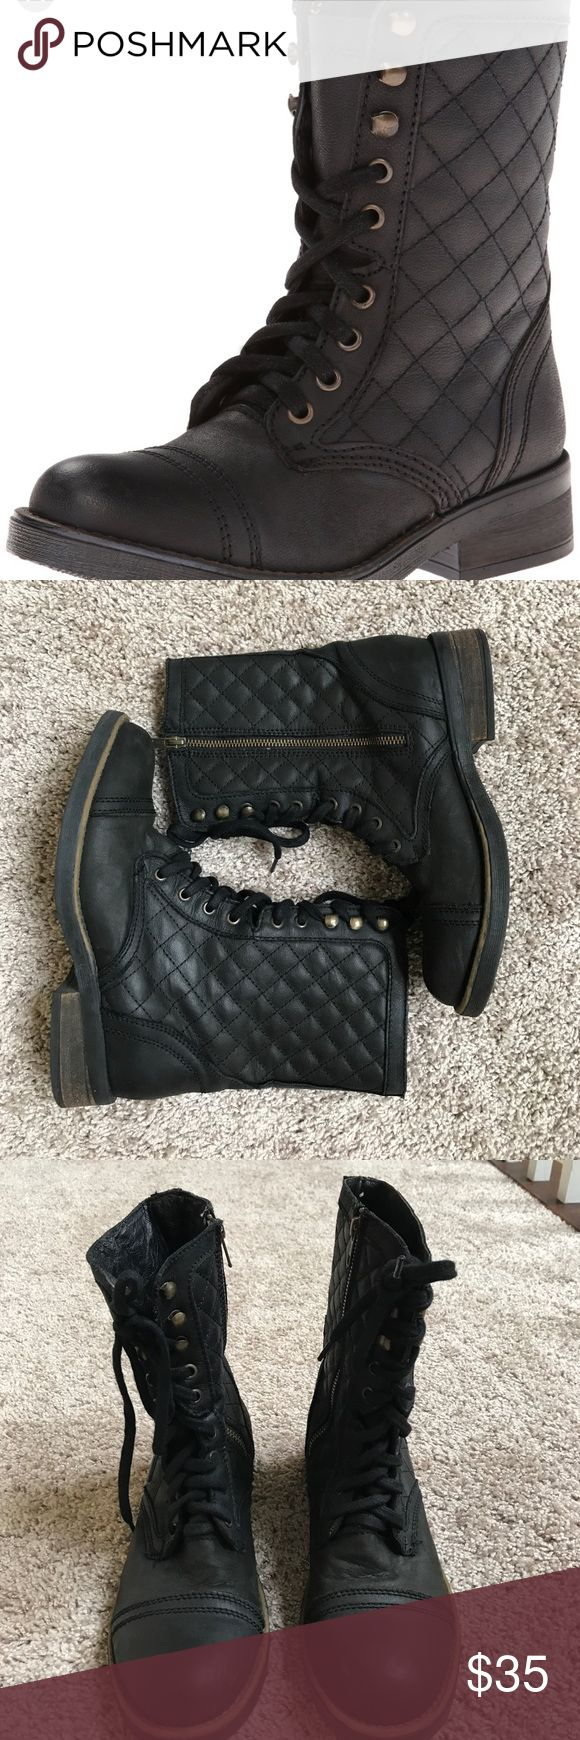 """Steve Madden Saffrin Combat Boots Steve Madden black Saffrin Combat Boots size 9 1/2. Excellent preloved condition except for few minor scuffs shown in picture. Leather upper and lining. Quilted with side zip closure and laces up. Clean toe and heel overlay. Man made insole and traction rubber sole. 1 1/4"""" heel Steve Madden Shoes Combat & Moto Boots"""